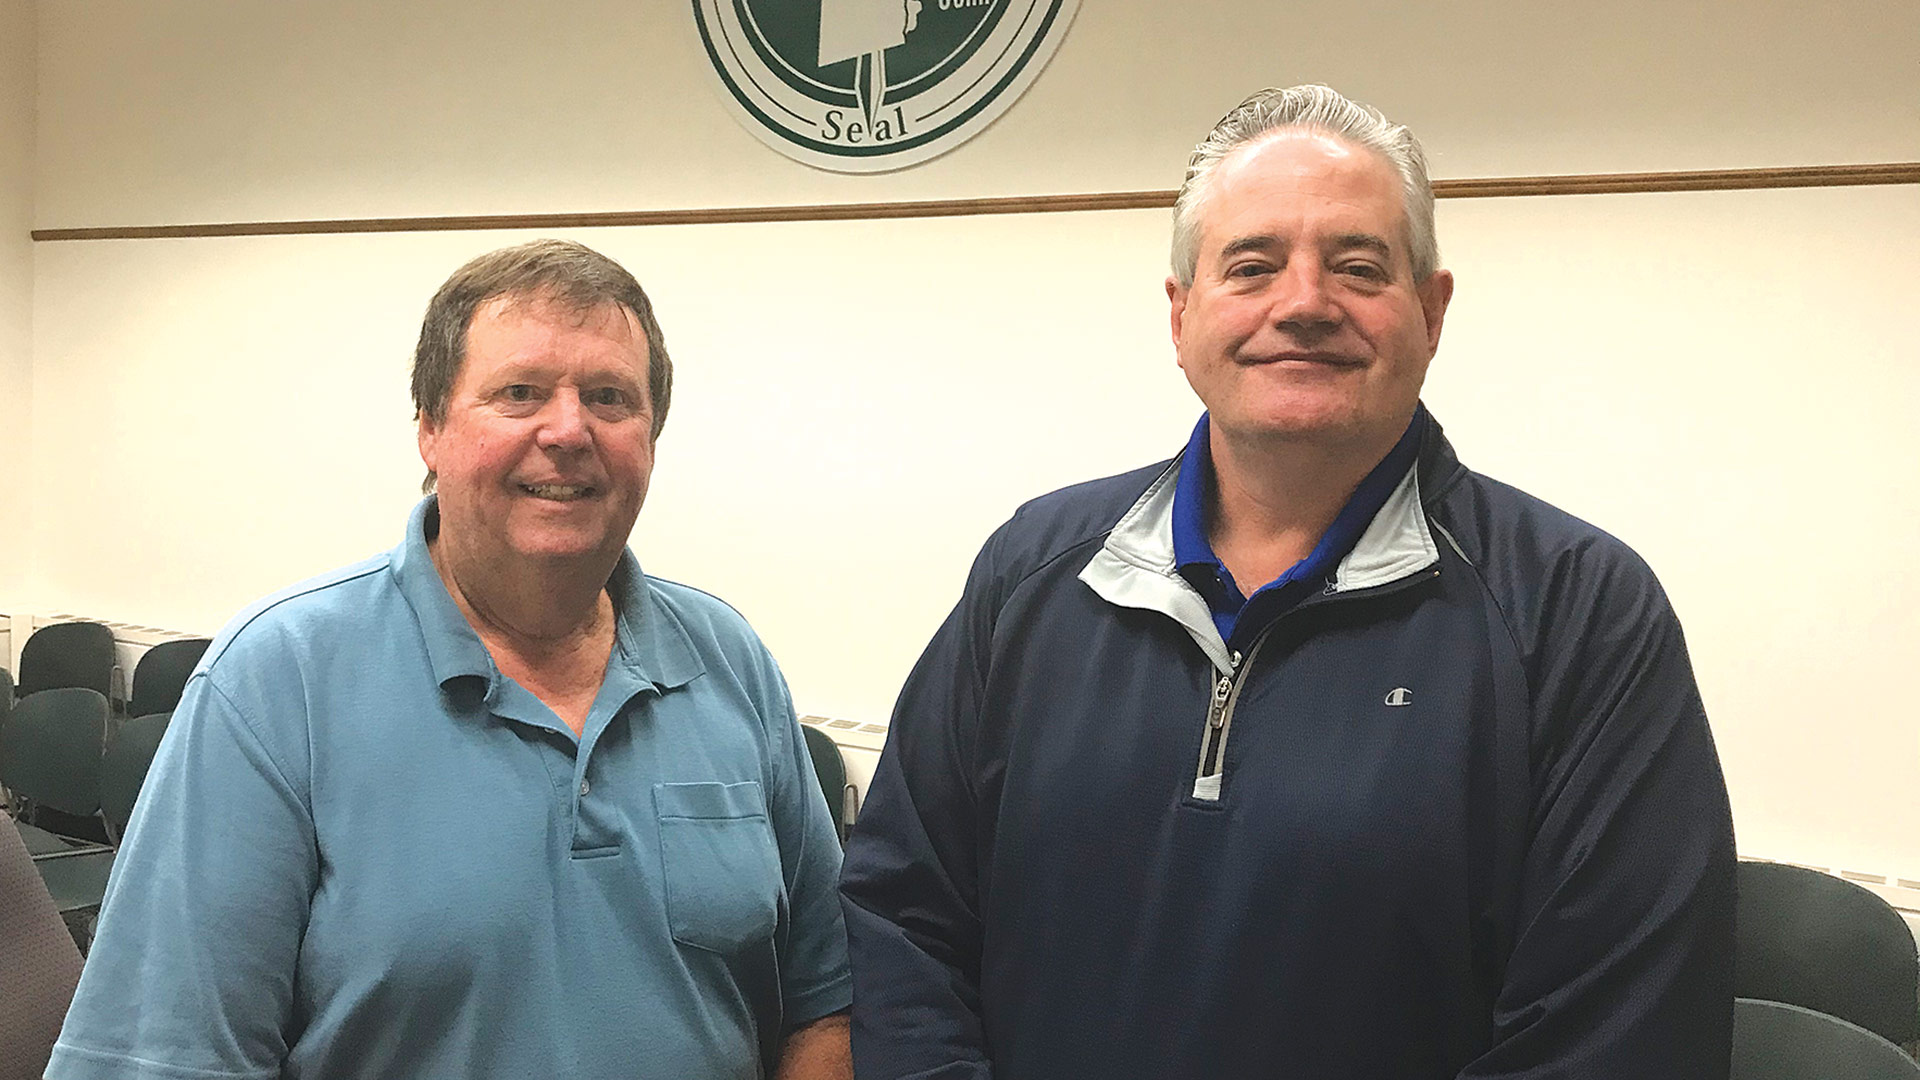 Russell Fox (left) and Karl Stinehart say Southwick benefits from its recreational amenities